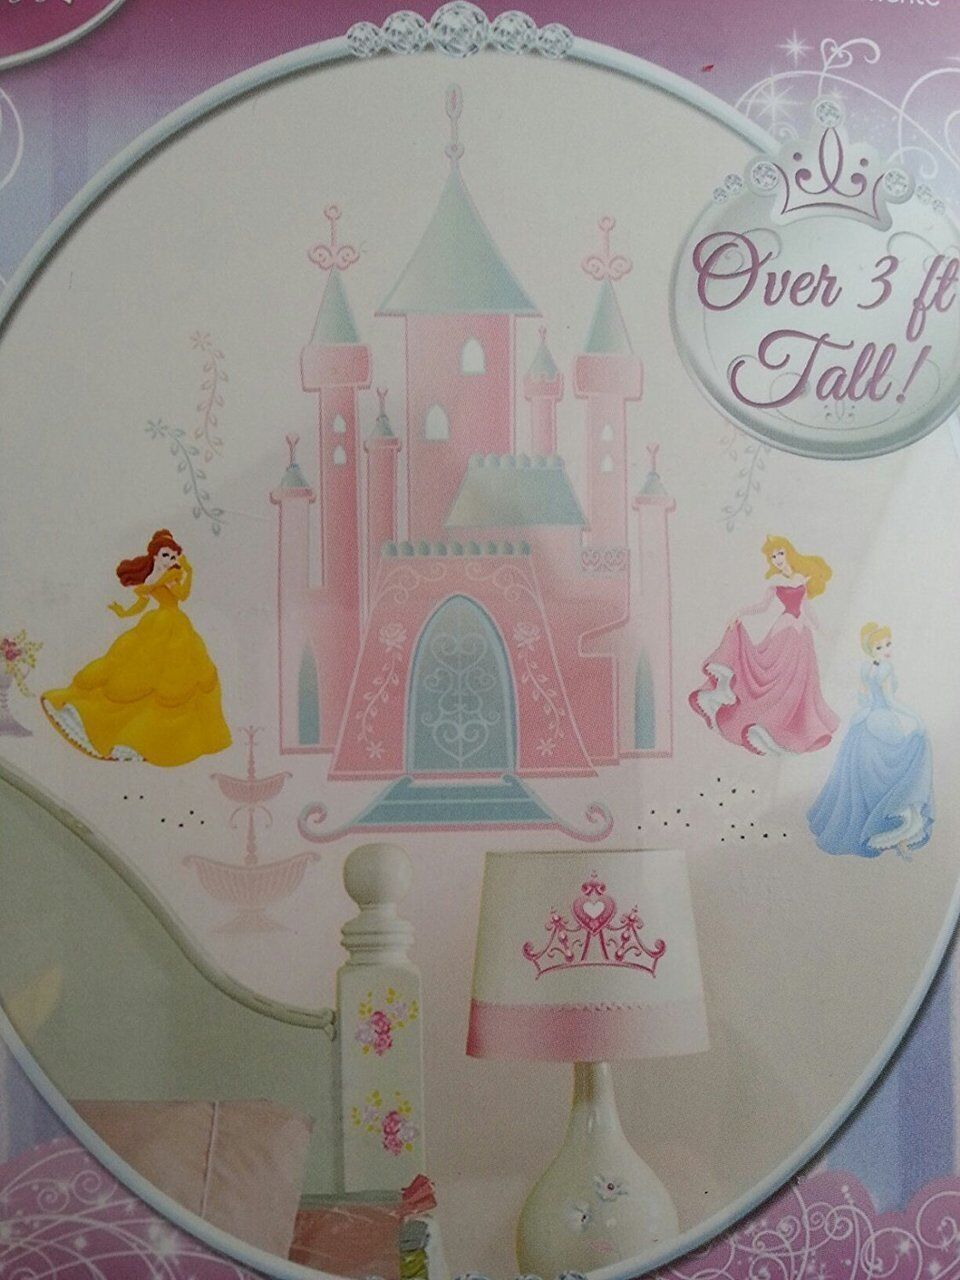 Disney Princess Giant Peel and Stick Wall Decal